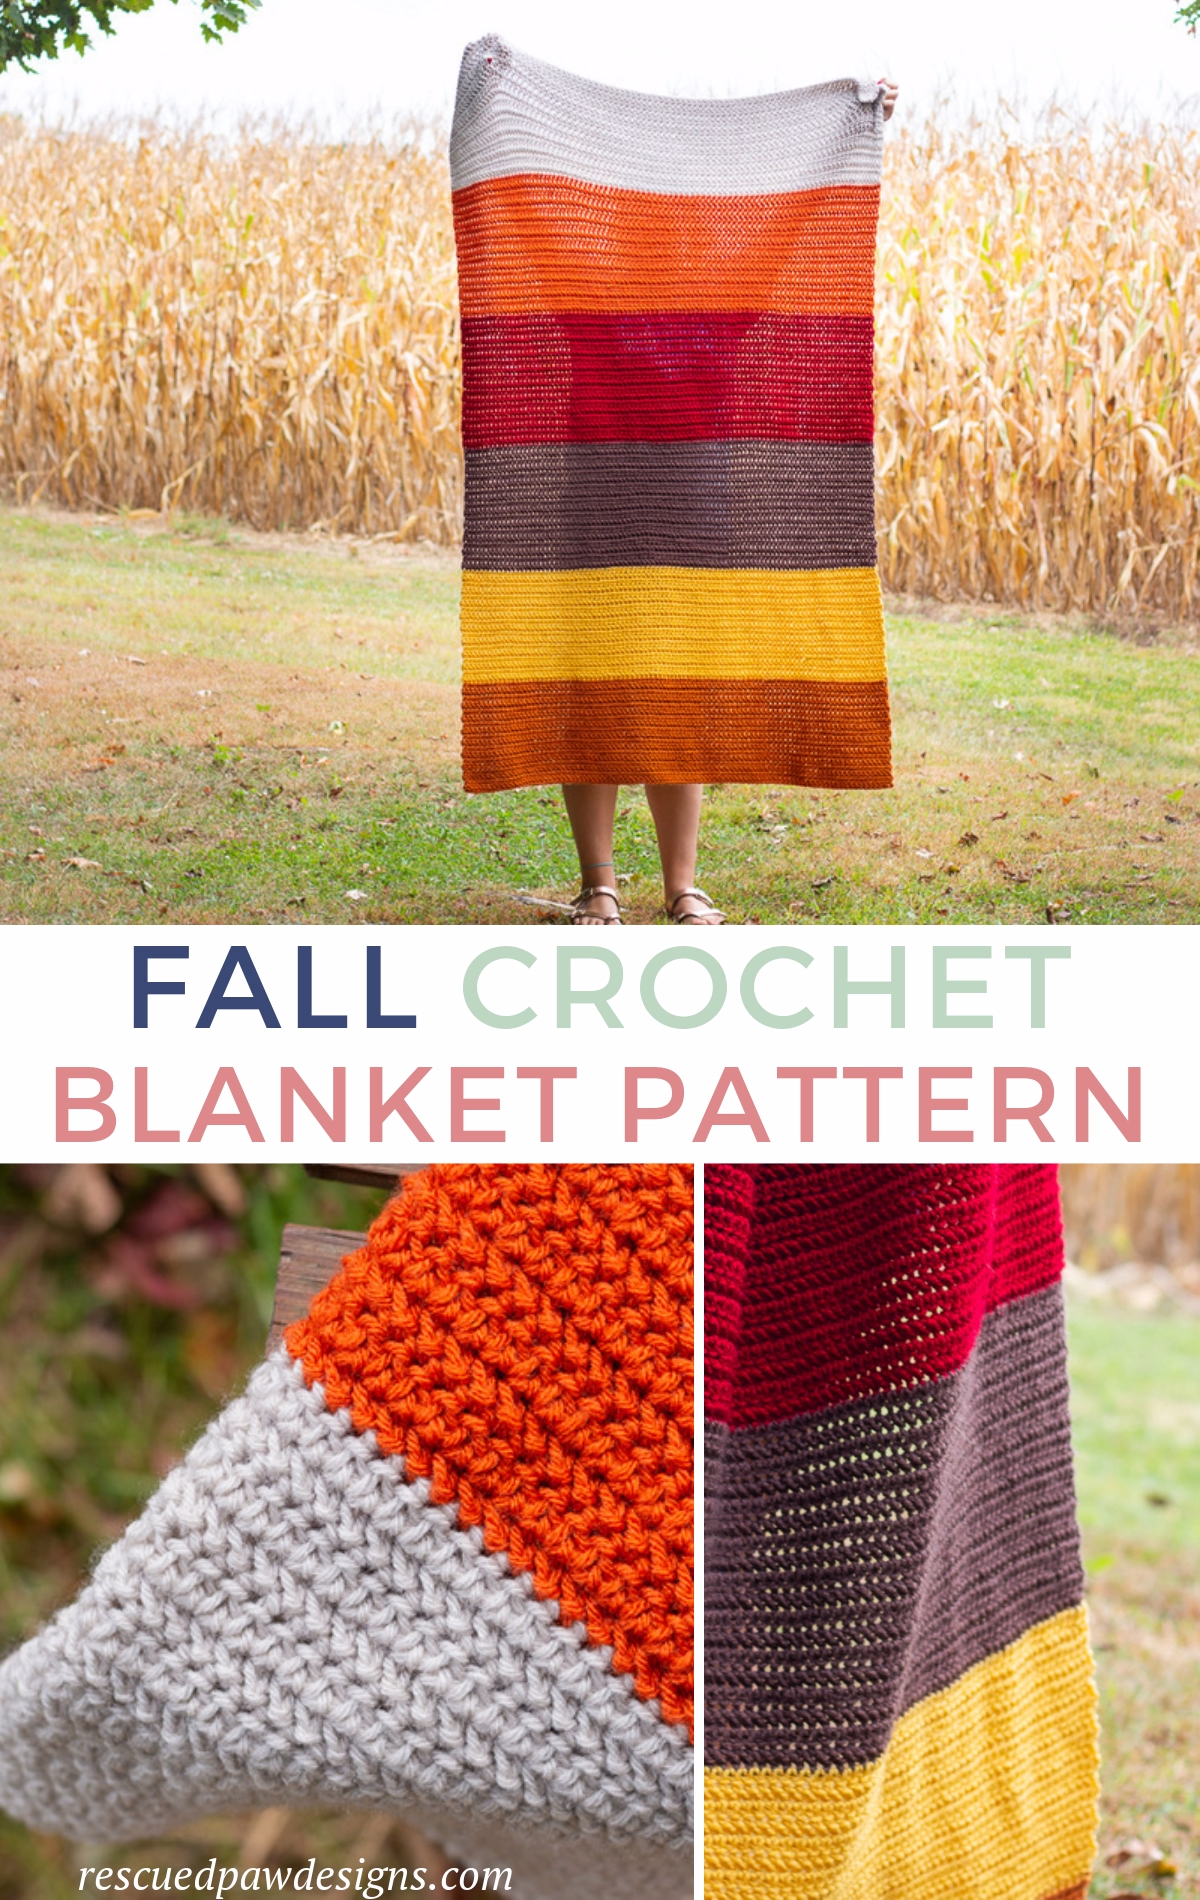 Photo of Fall Crochet Blanket Pattern using the HHDC Stitch